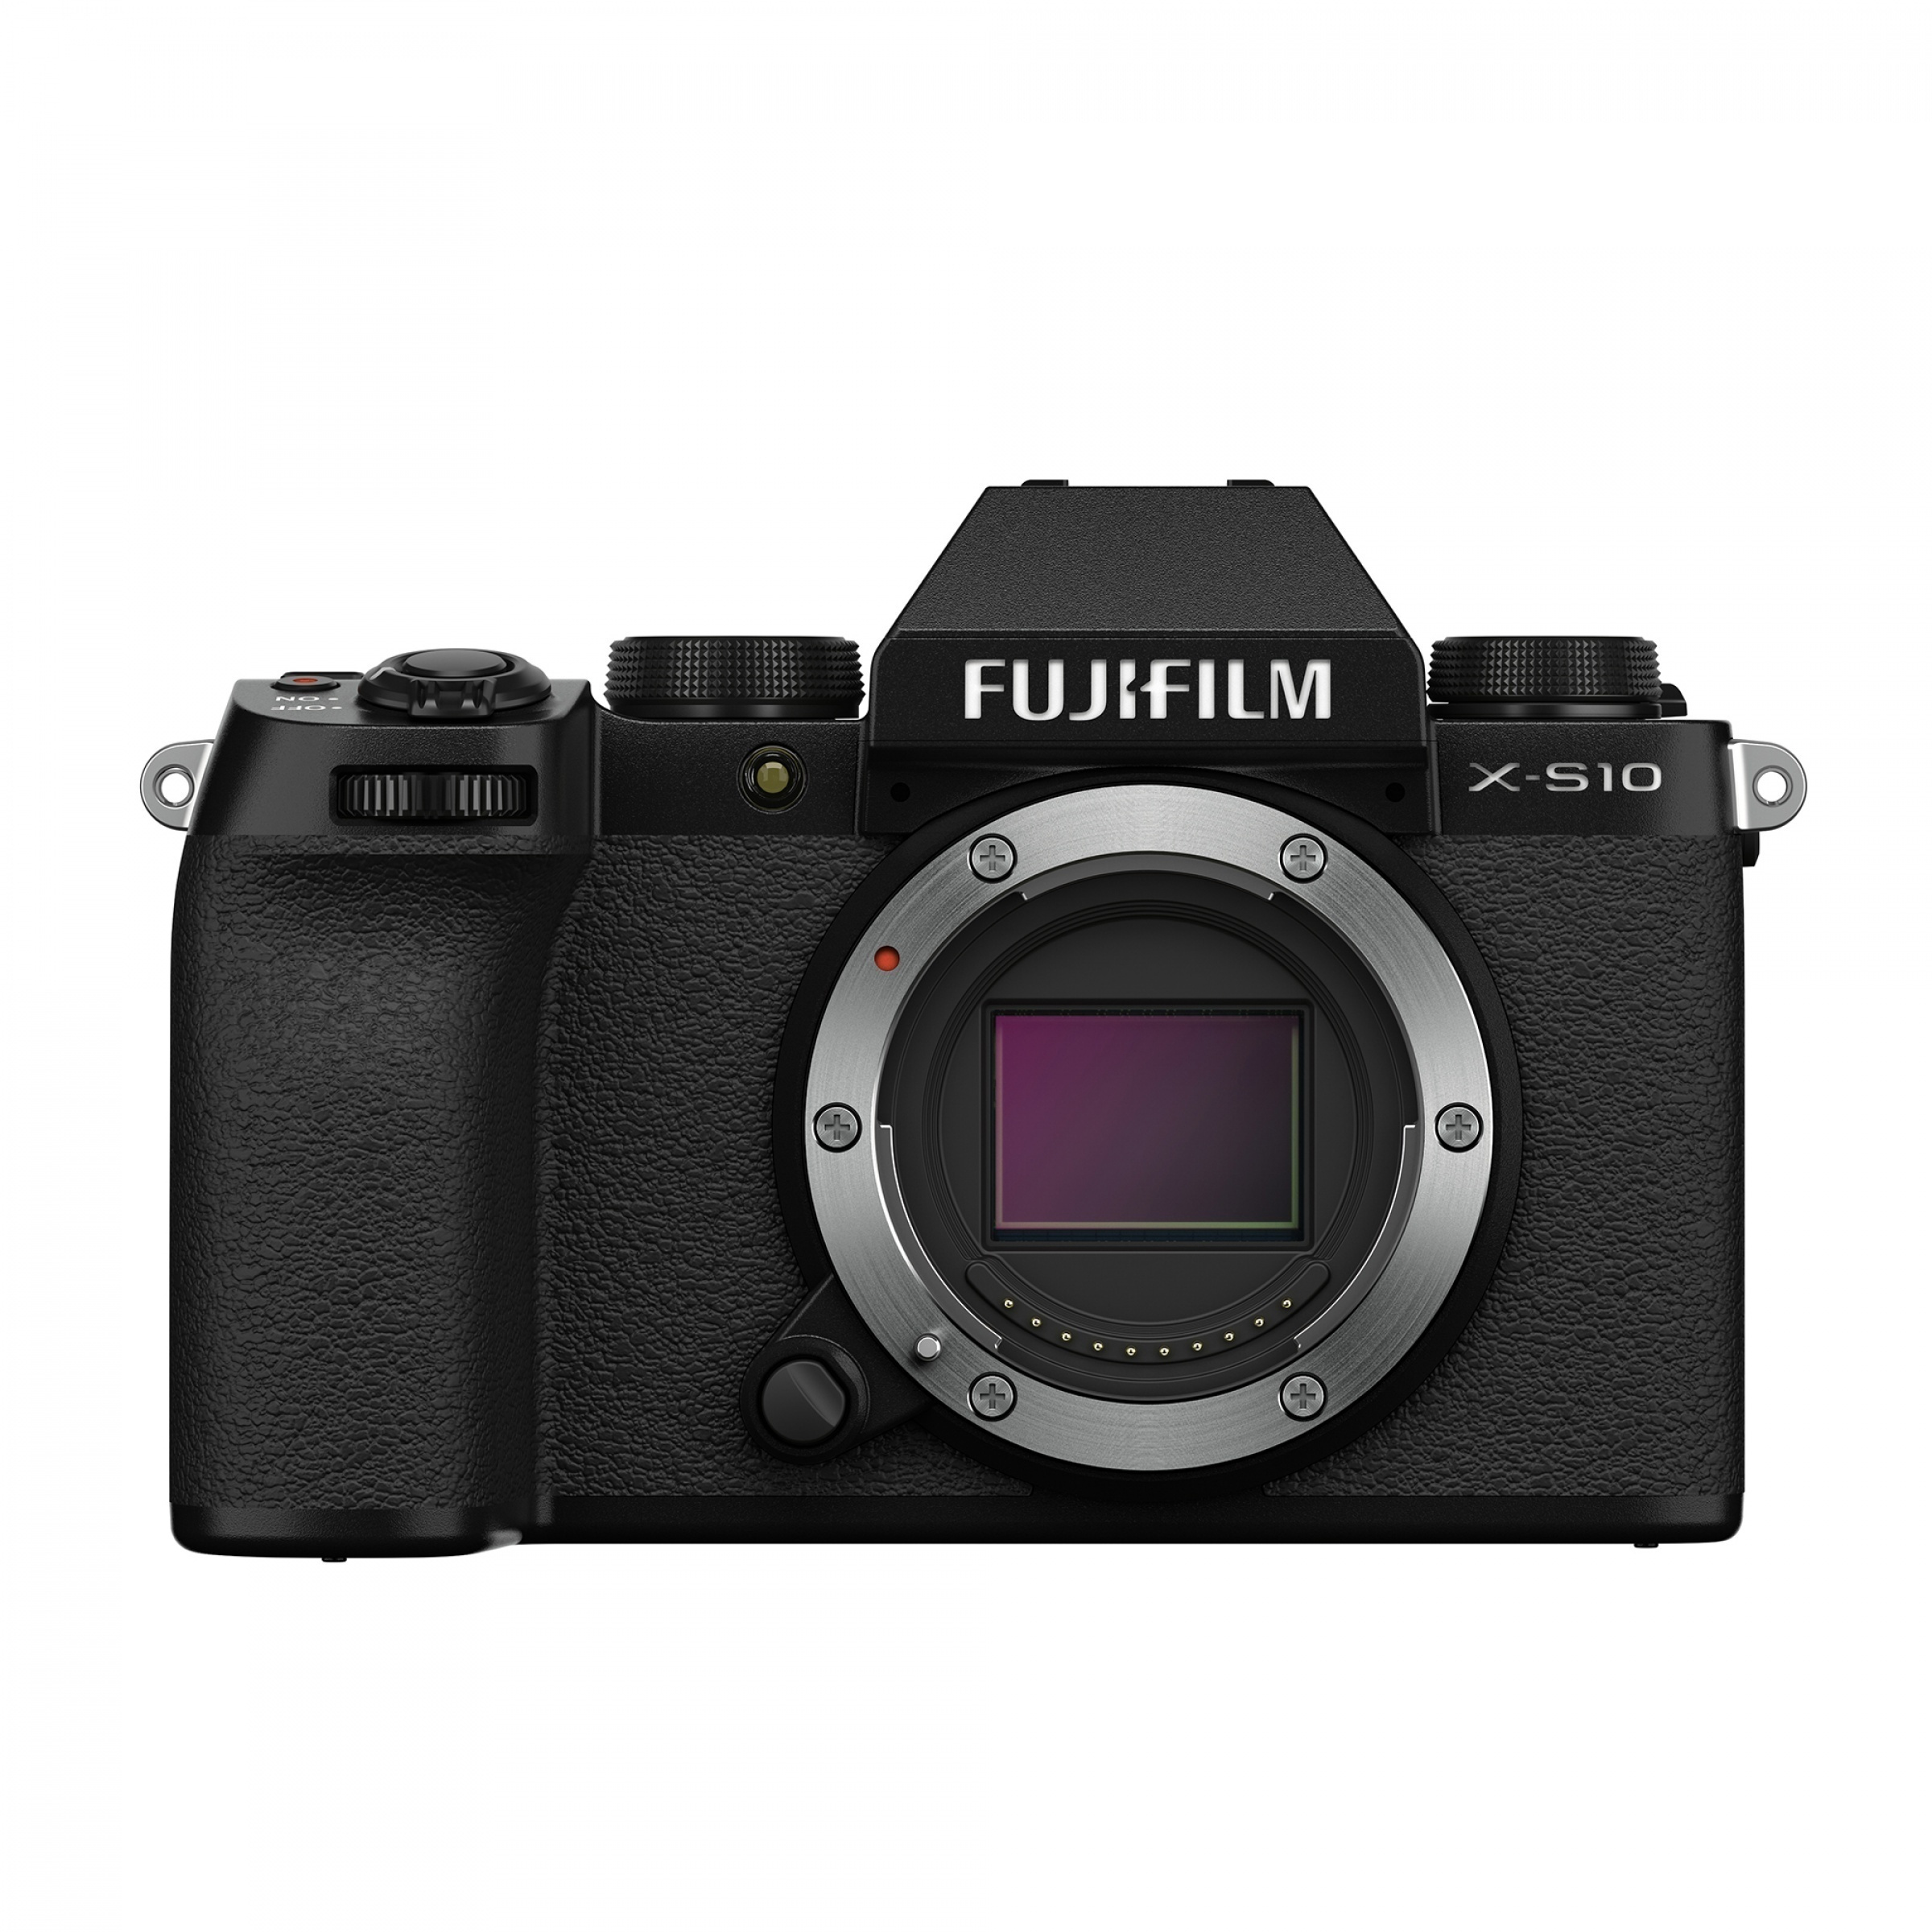 Fujifilm-X-S10-Body-Black